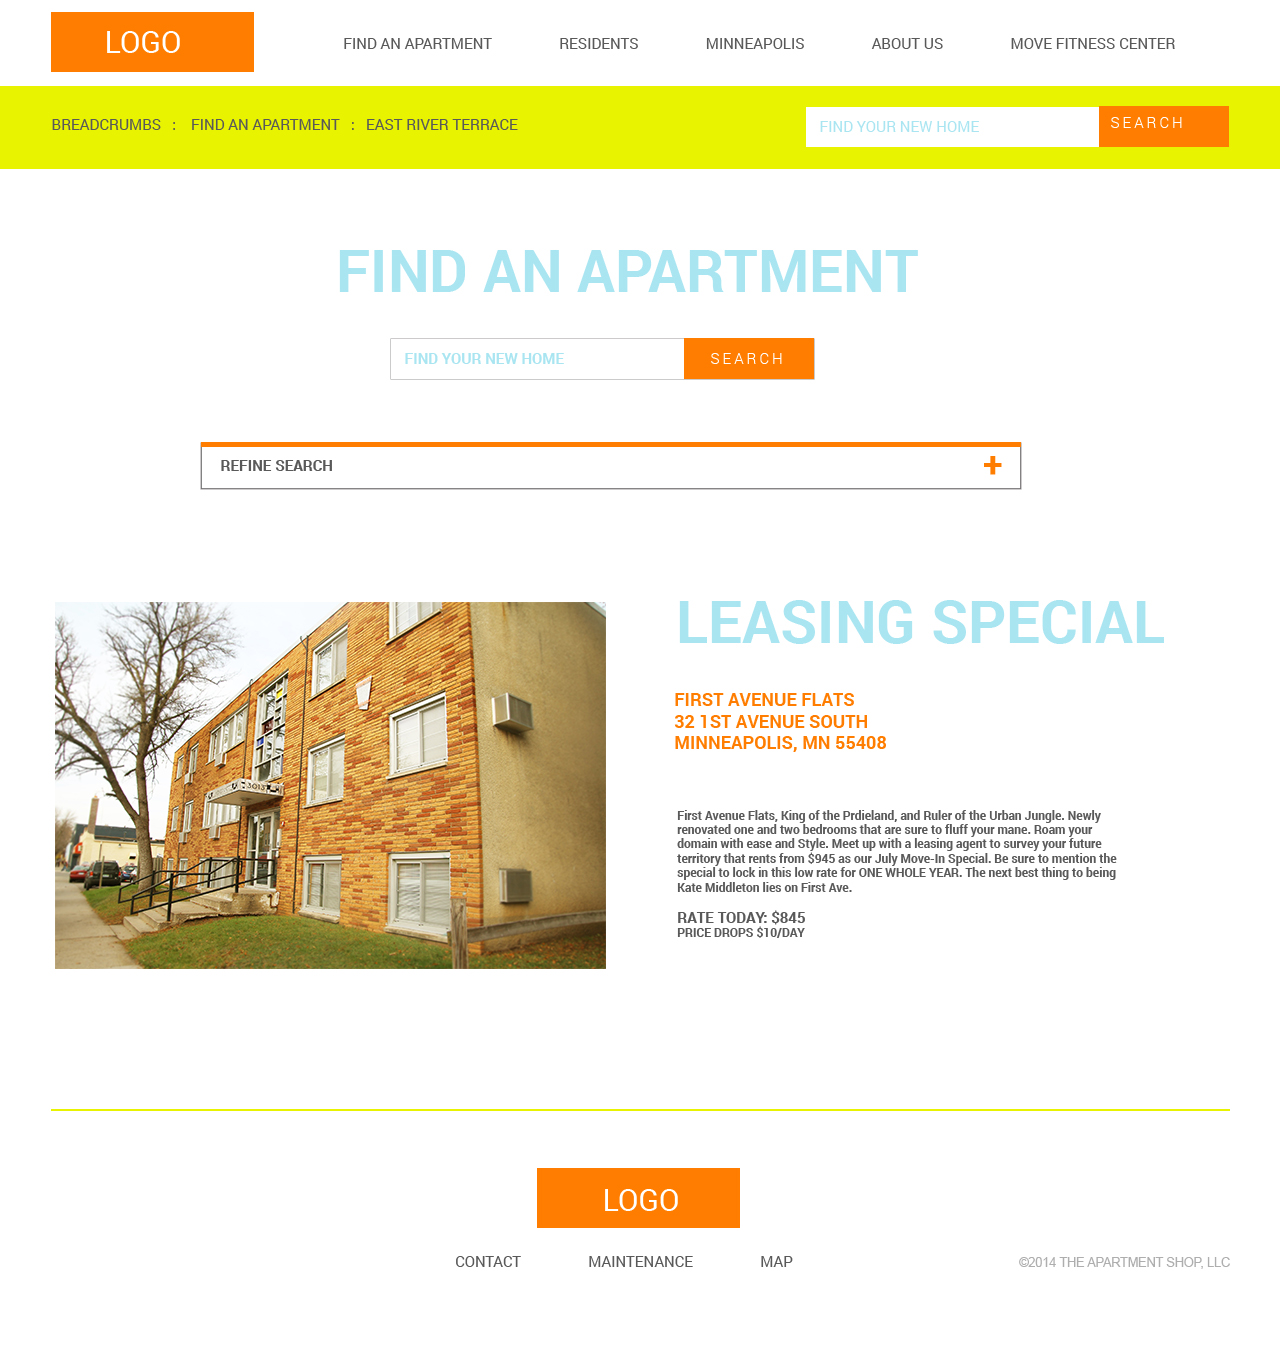 FIND_AN_APARTMENT_LANDING_PAGE.jpg